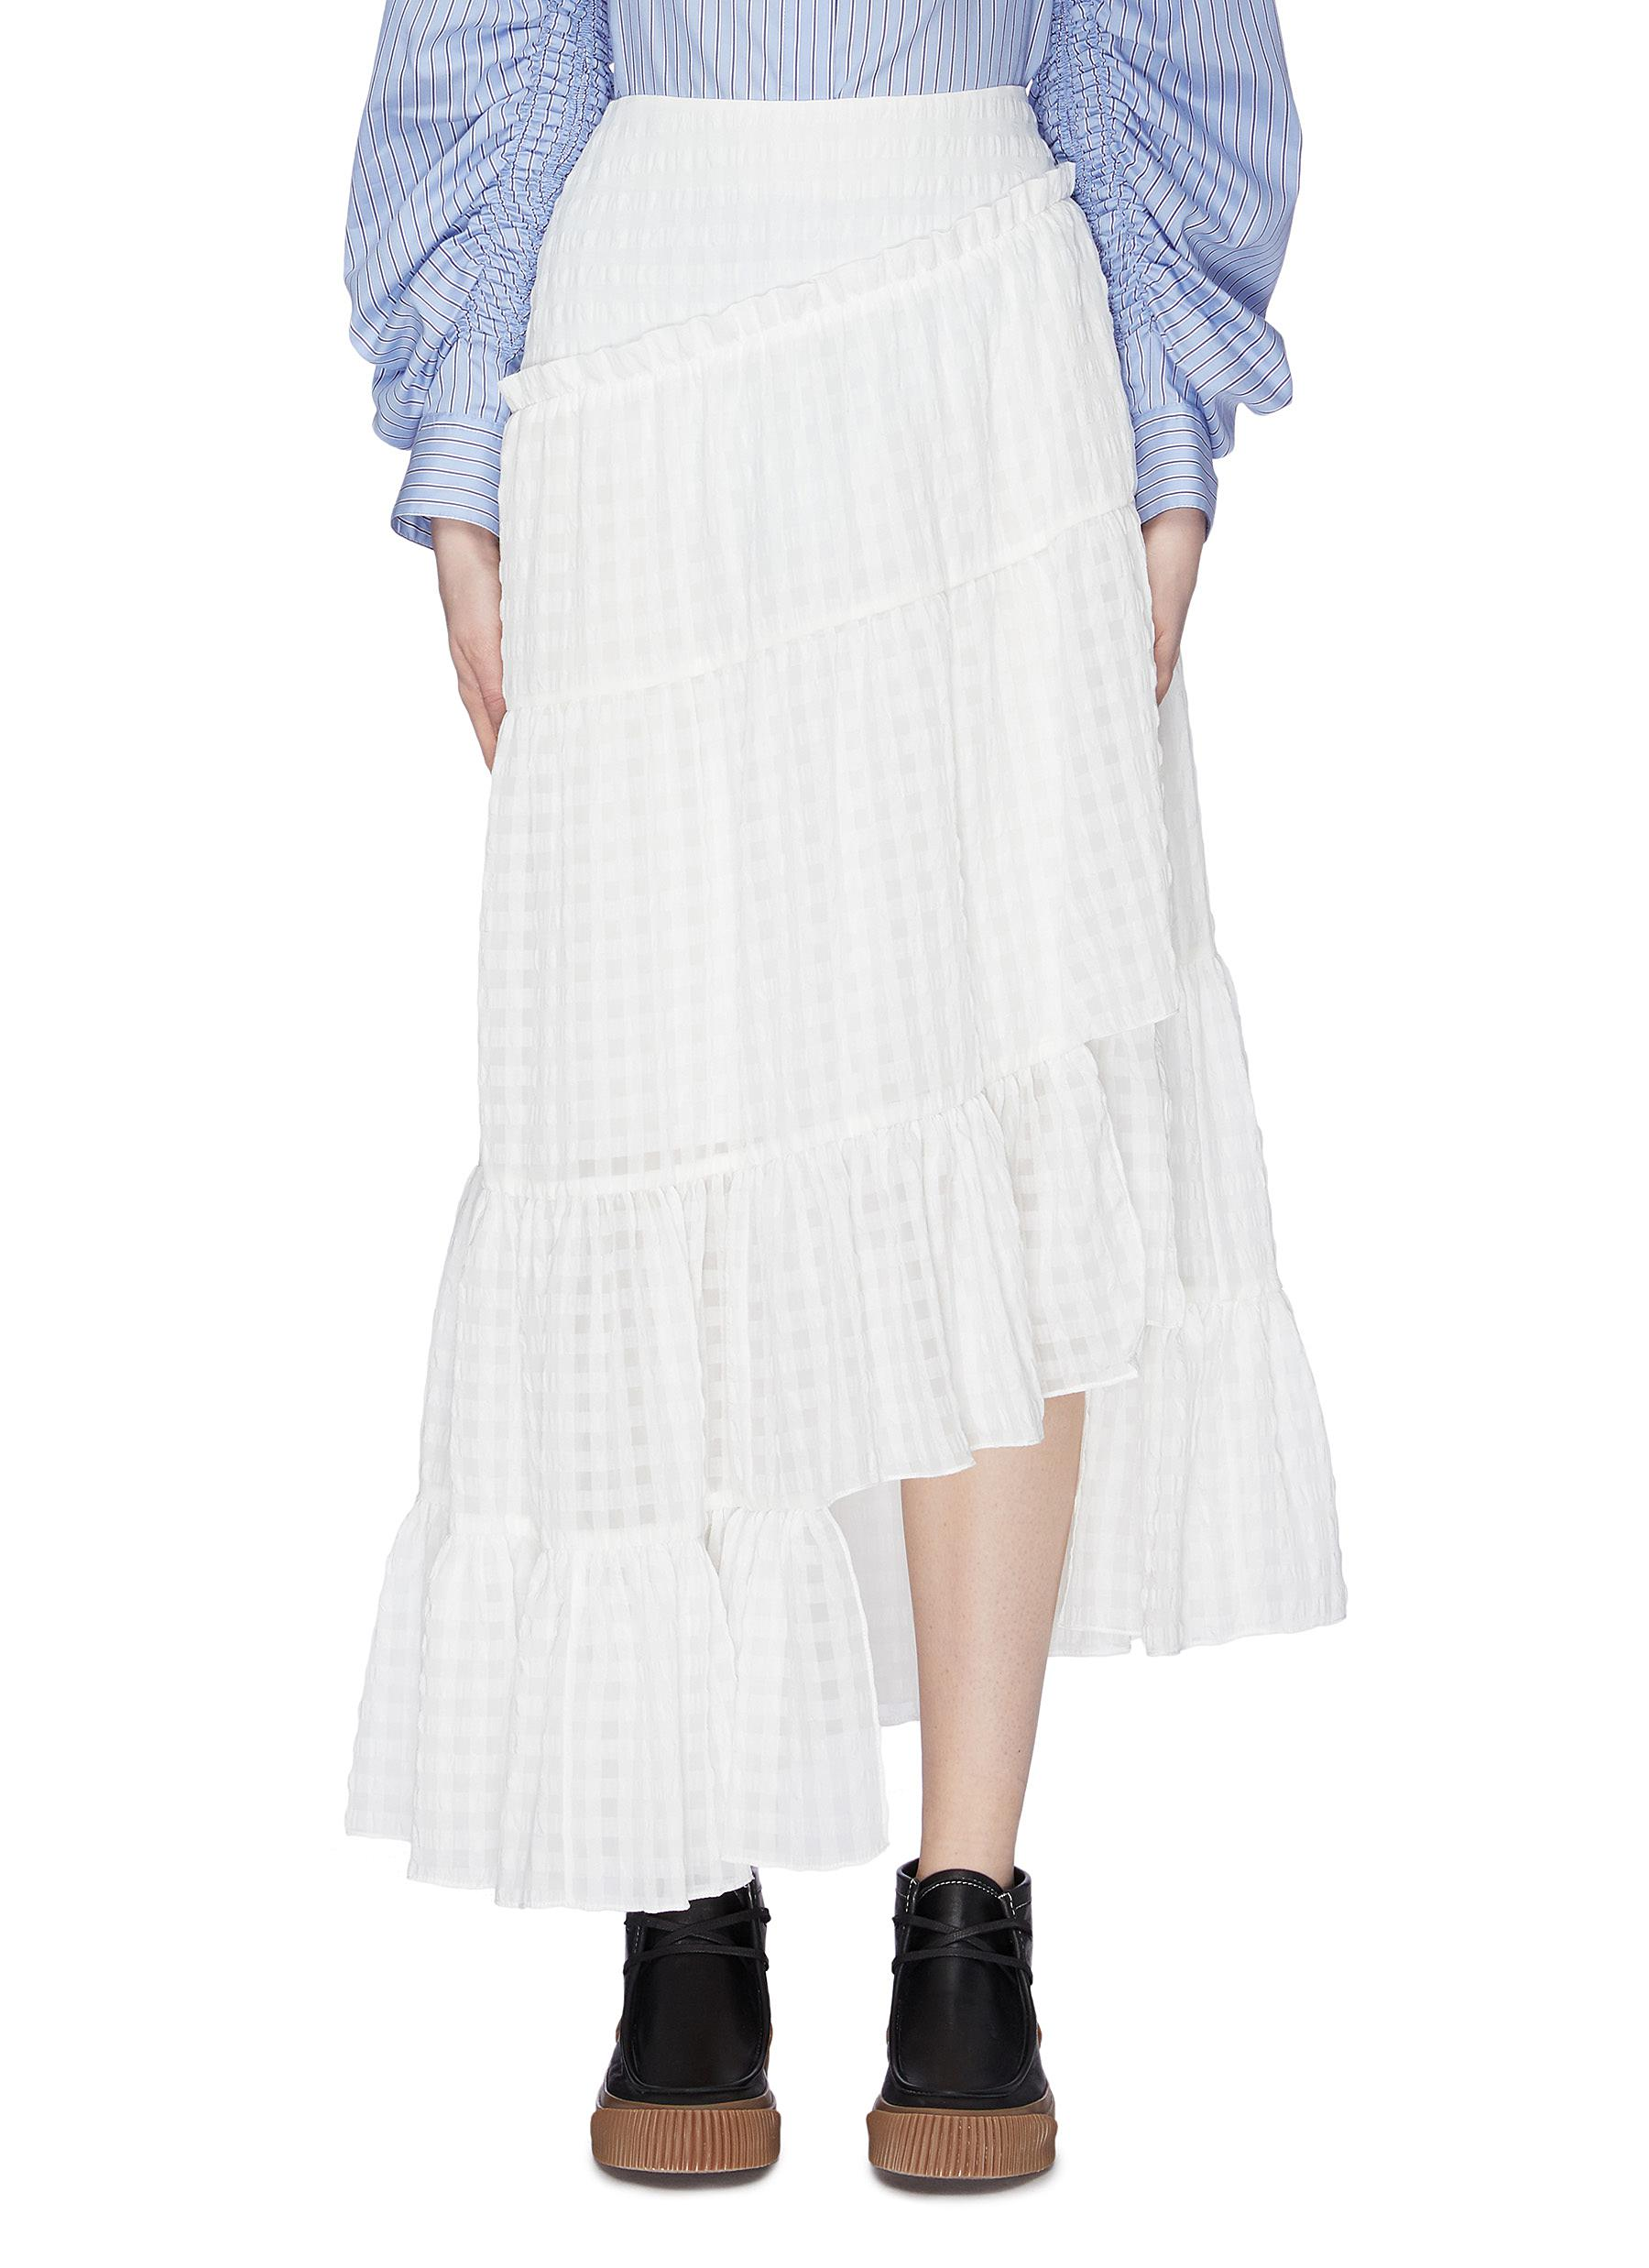 Asymmetric ruffle tiered check skirt by 3.1 Phillip Lim